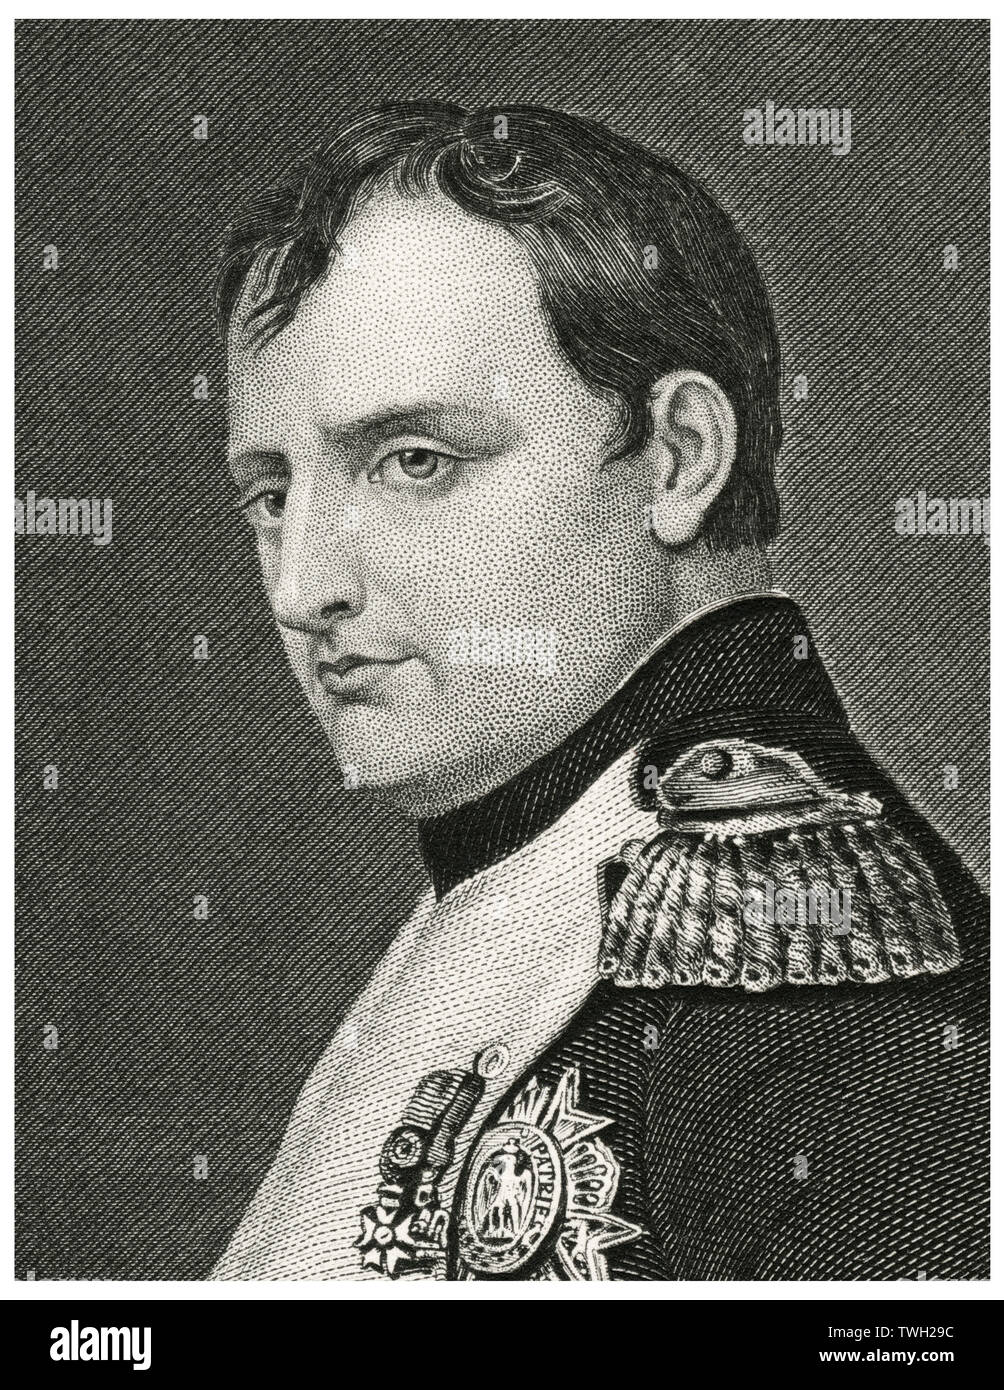 Napoleon Bonaparte (1769-1821), Emperor of France as Napoleon I 1804-14 and briefly in 1815, Head and Shoulders Portrait, Steel Engraving, Portrait Gallery of Eminent Men and Women of Europe and America by Evert A. Duyckinck, Published by Henry J. Johnson, Johnson, Wilson & Company, New York, 1873 - Stock Image